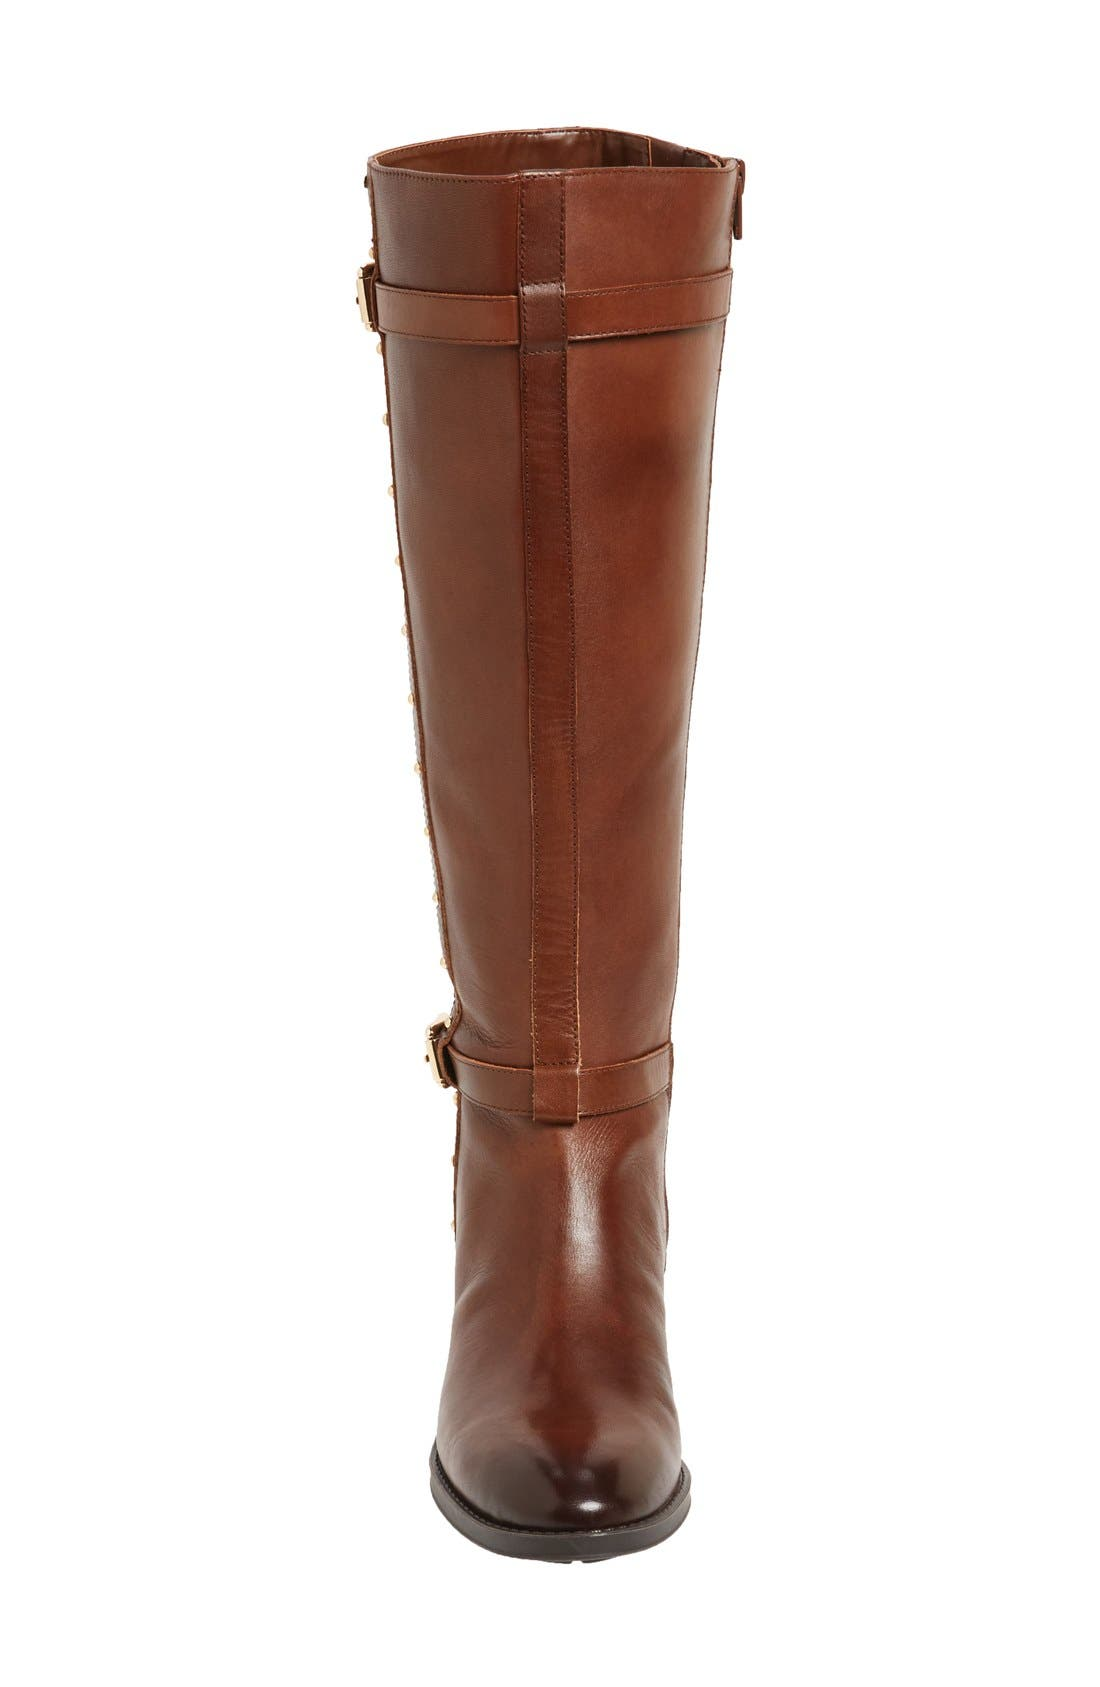 Alternate Image 3  - Vince Camuto 'Preslen' Riding Boot (Women) (Wide Calf)